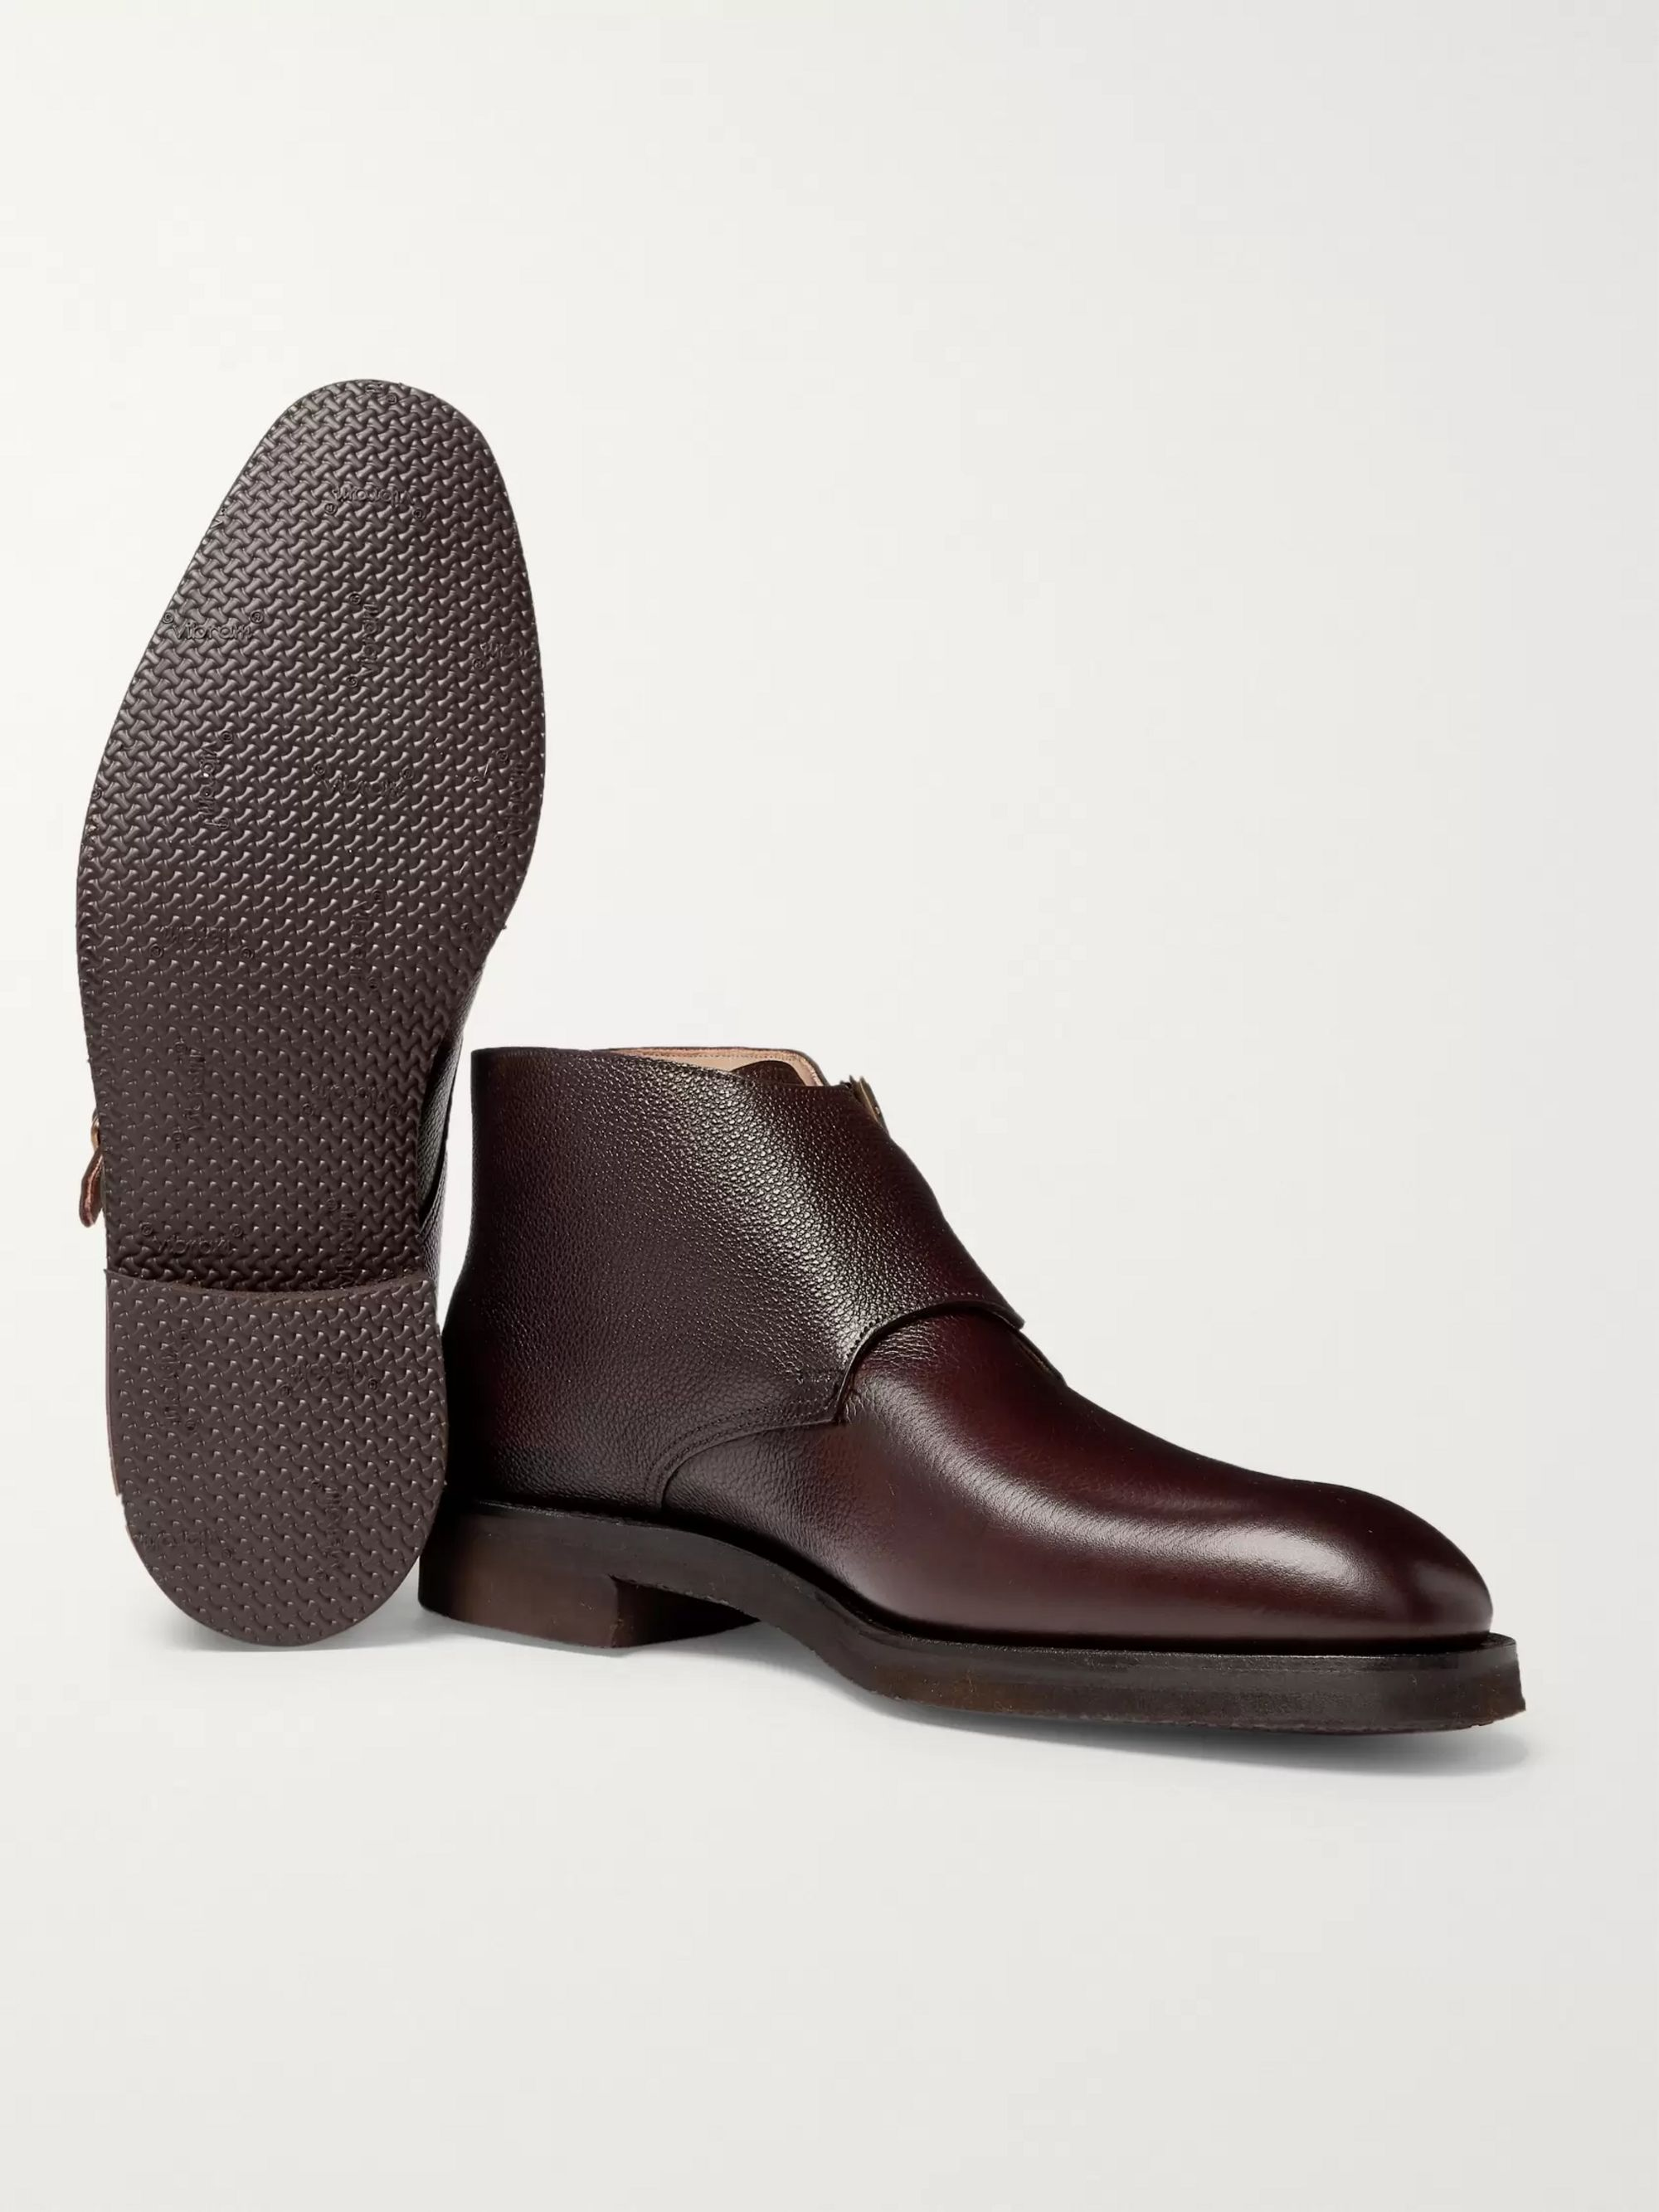 George Cleverley Fry Suede Monk-Strap Boots